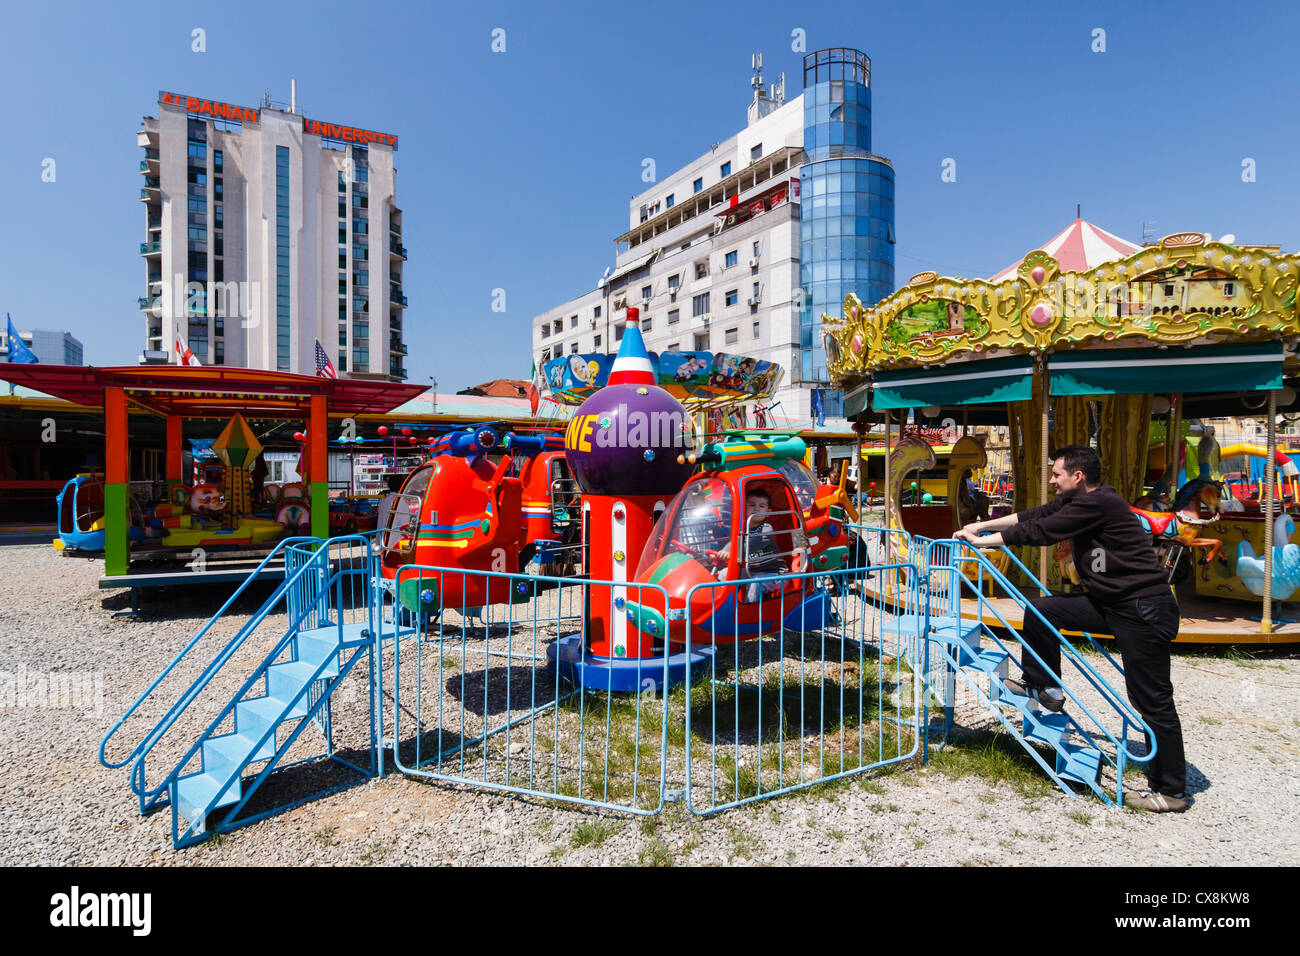 Carousel and small funfair by Albanian University building in downtown Tirana, Albania - Stock Image